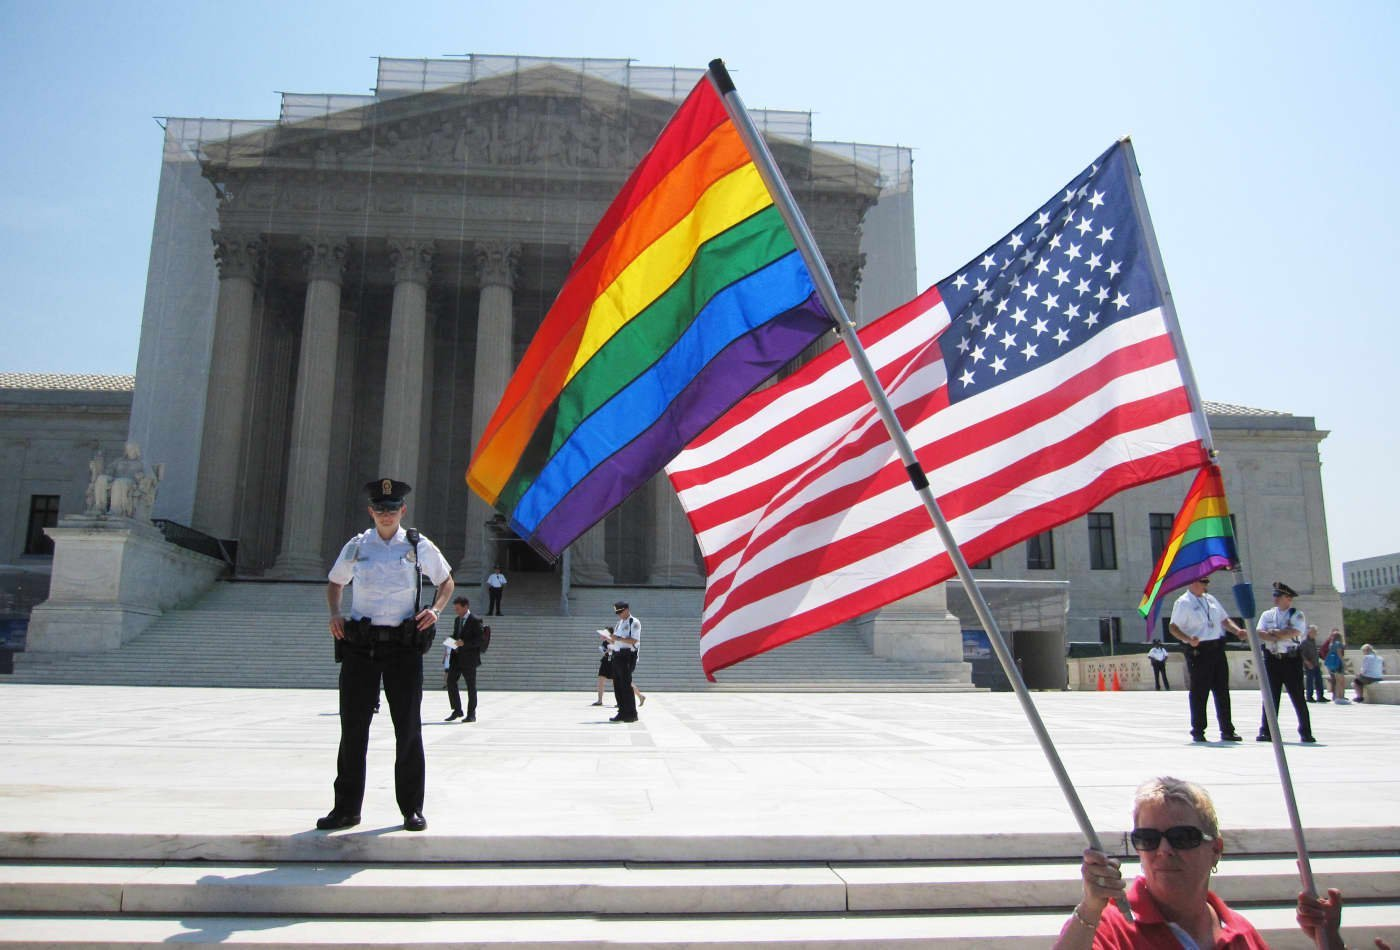 The Collision of LGBTQ+ Rights And Religious Freedoms